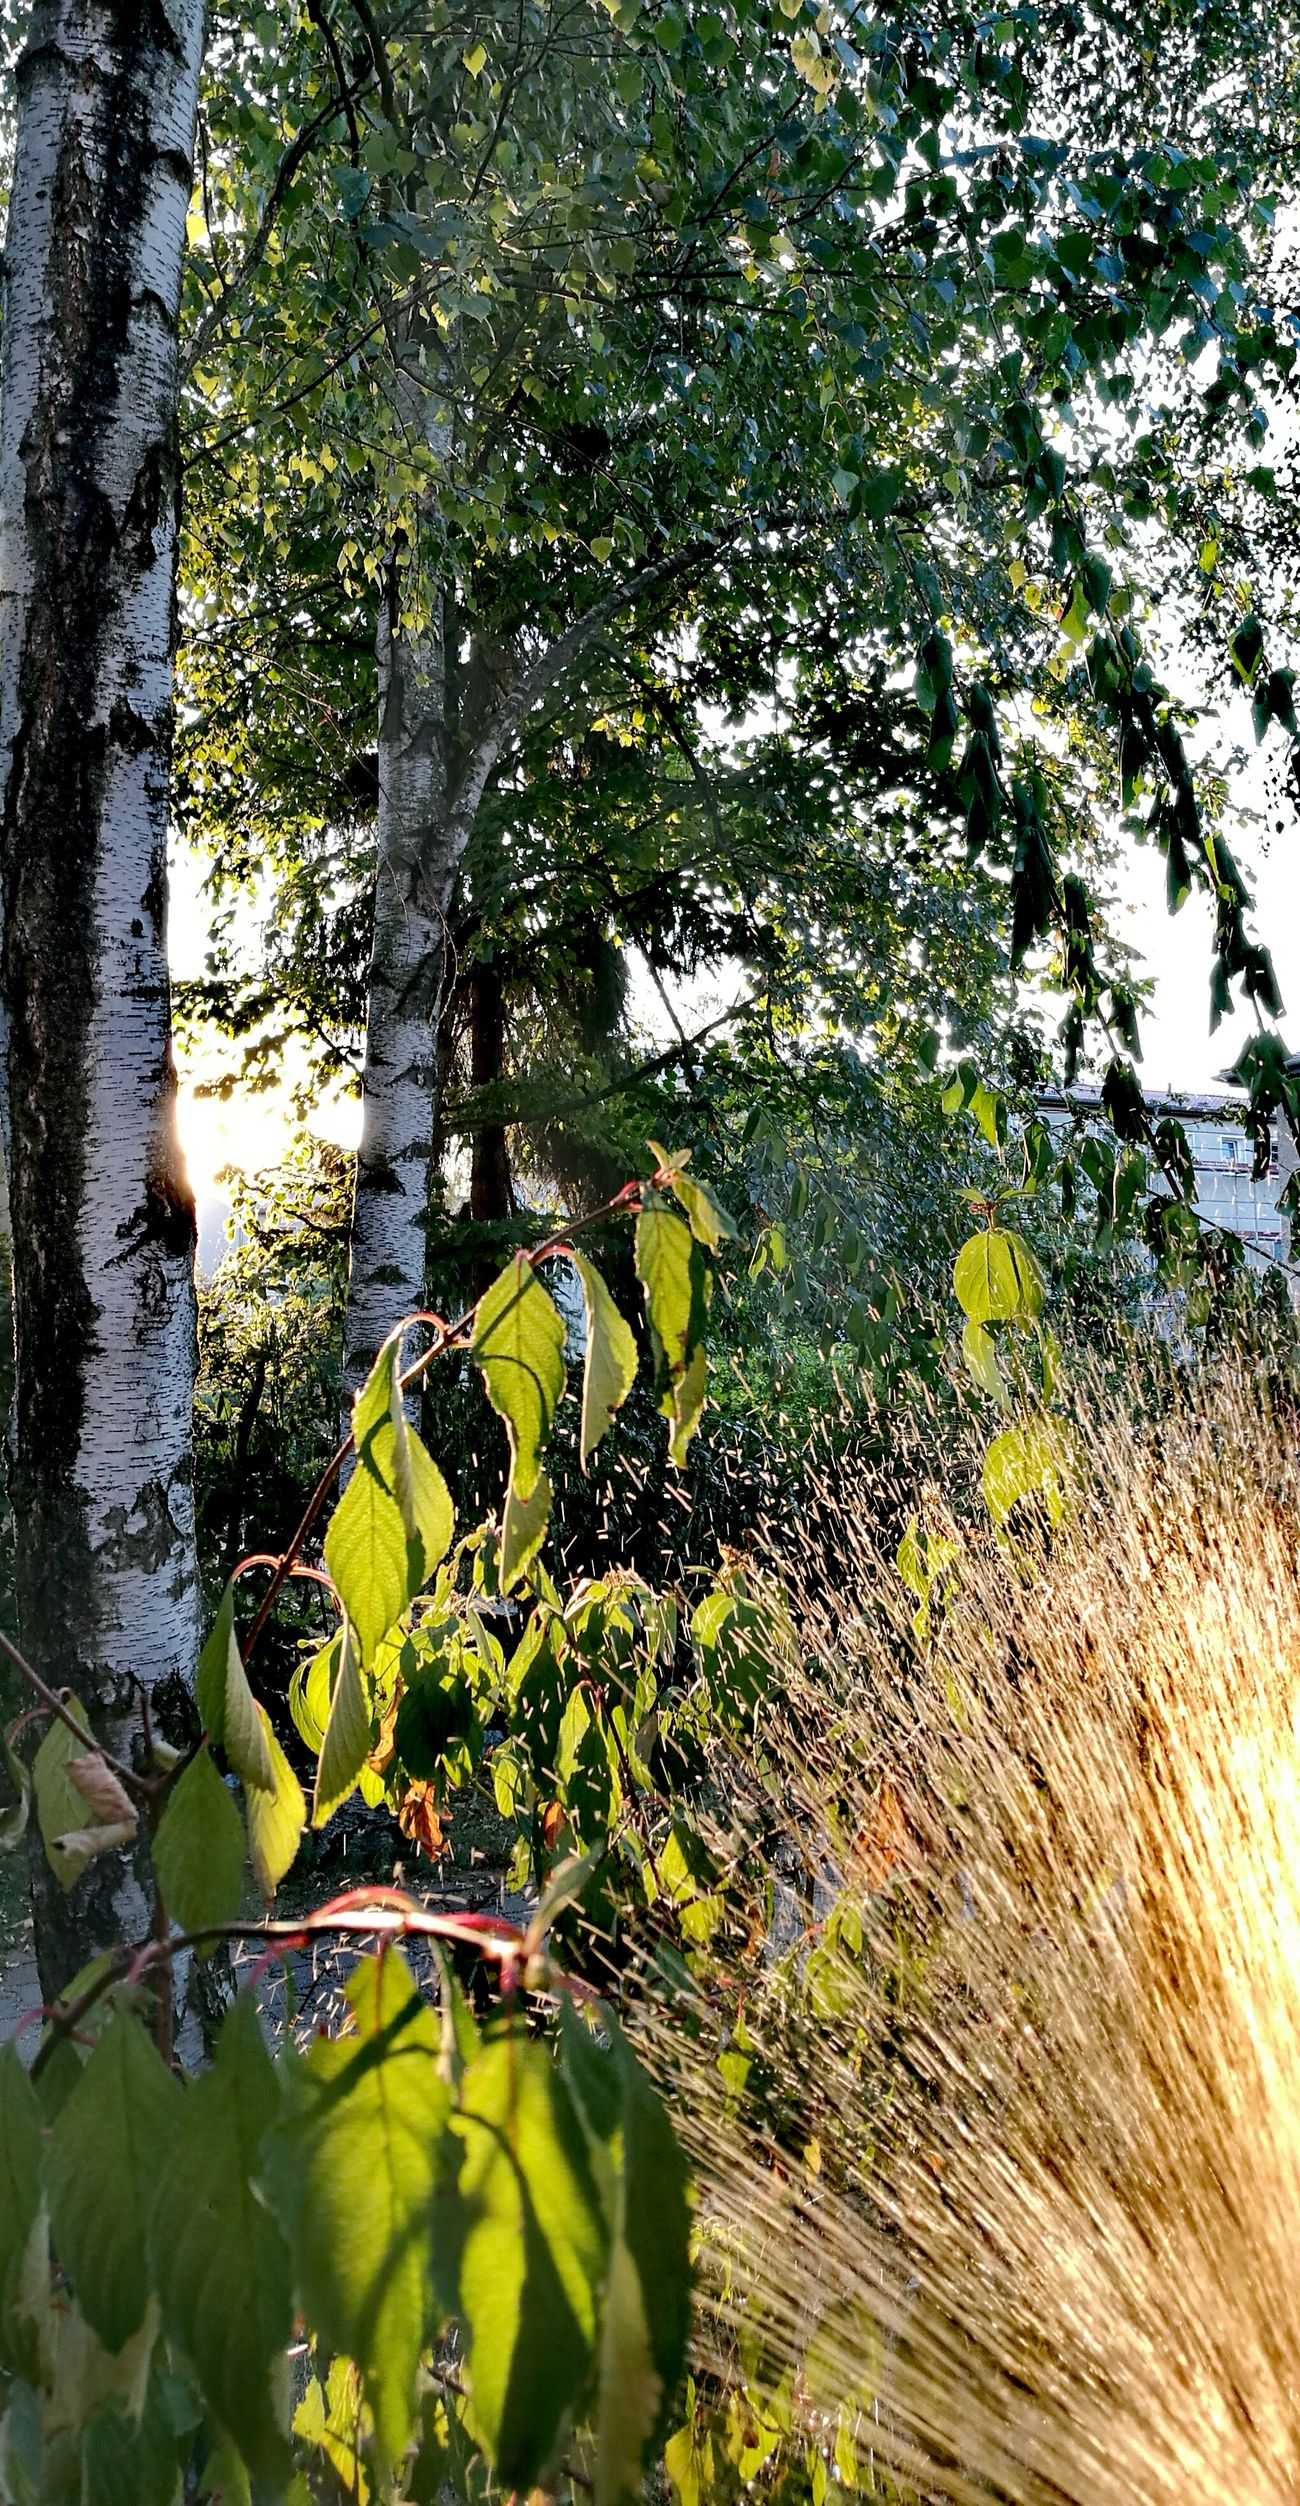 Beauty In Nature Outdoors Evening Light In Our Garden Watering Plants Berlin Tempelhof Birch Tree Green Leafs